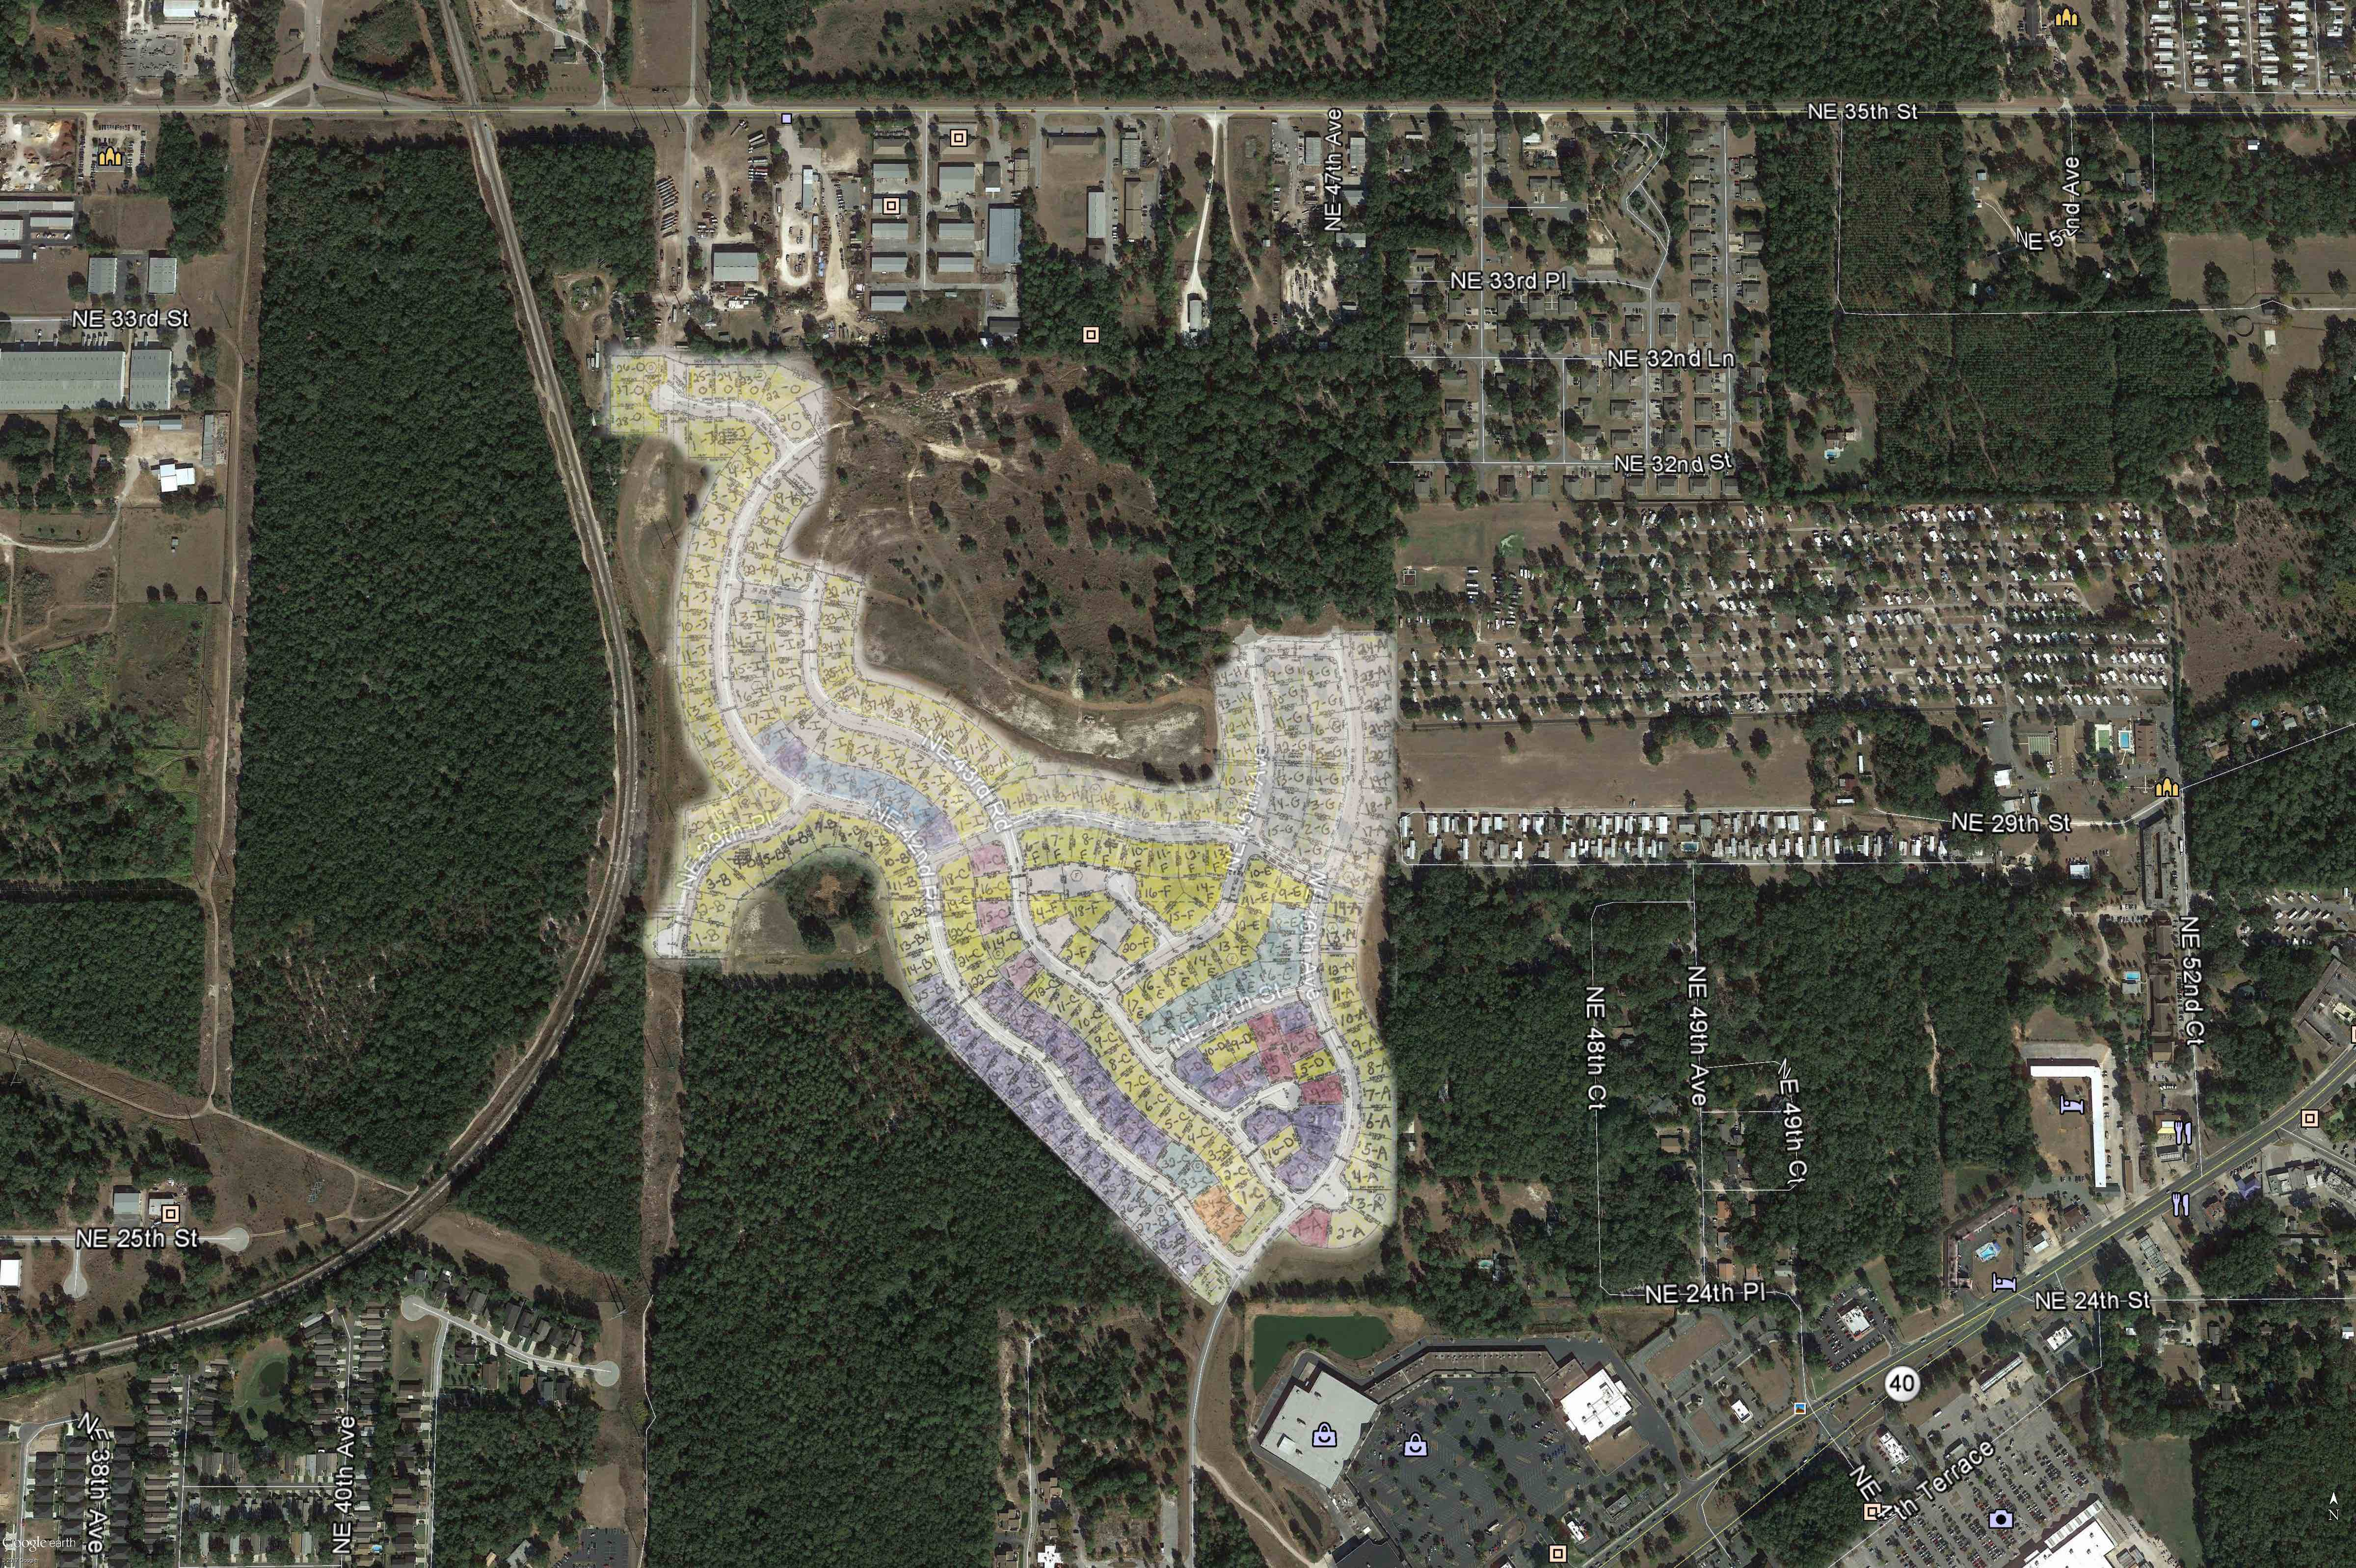 Oak Hill_Google Earth Aerial_site plan overlay